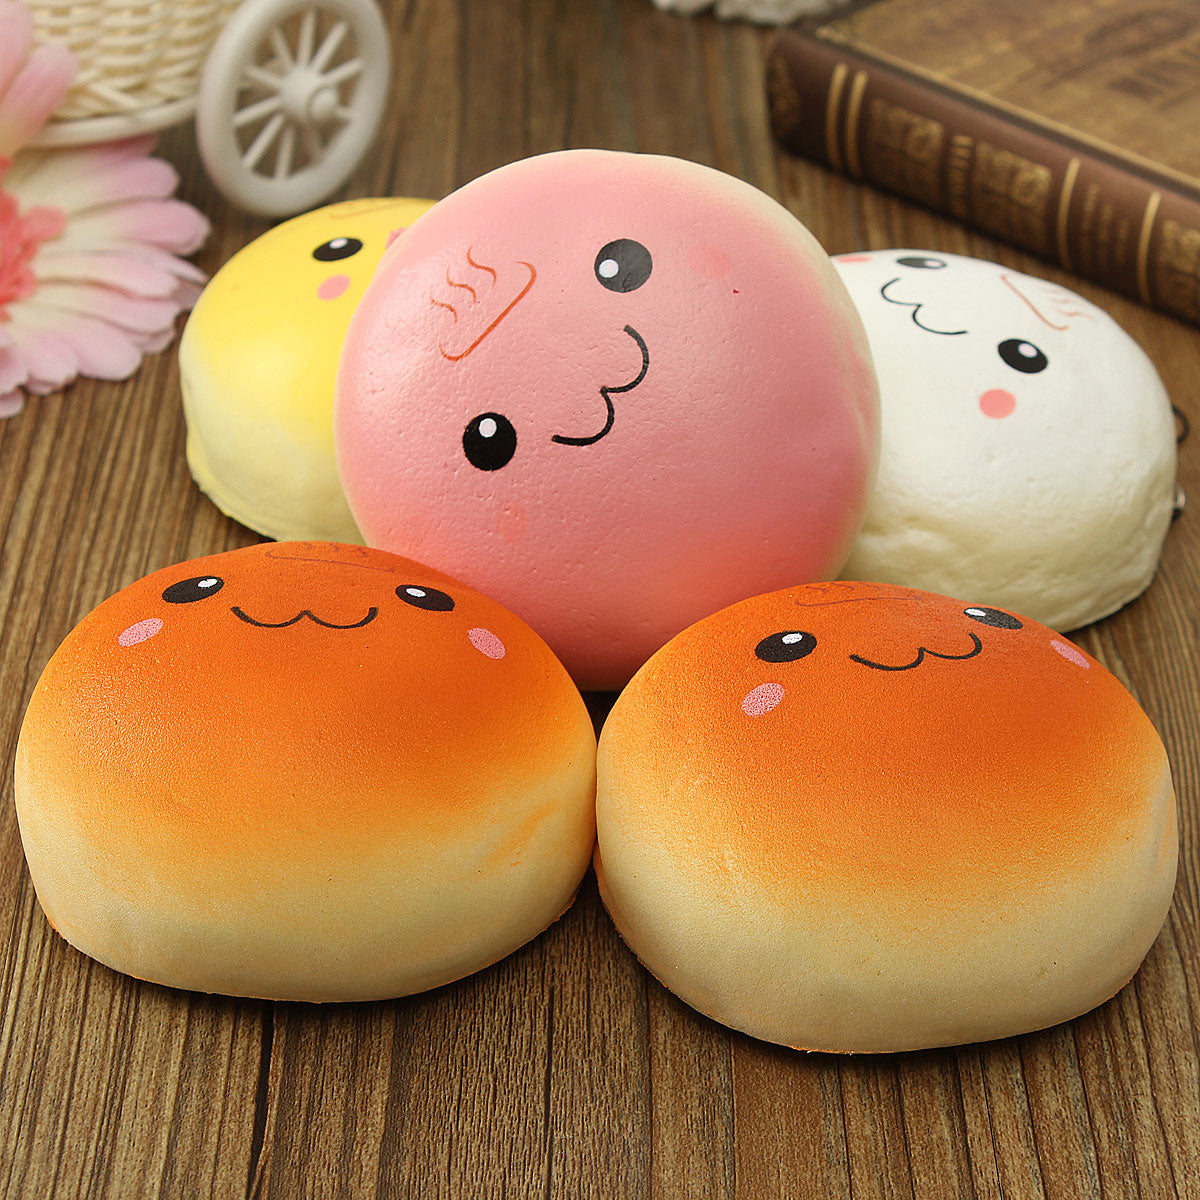 Costbuys  Smiling Expression Kawaii 10cm Cute Toy Bread Key Chain Bag Phone Charm Strap Novelty Kids Children Funny Anti Stress